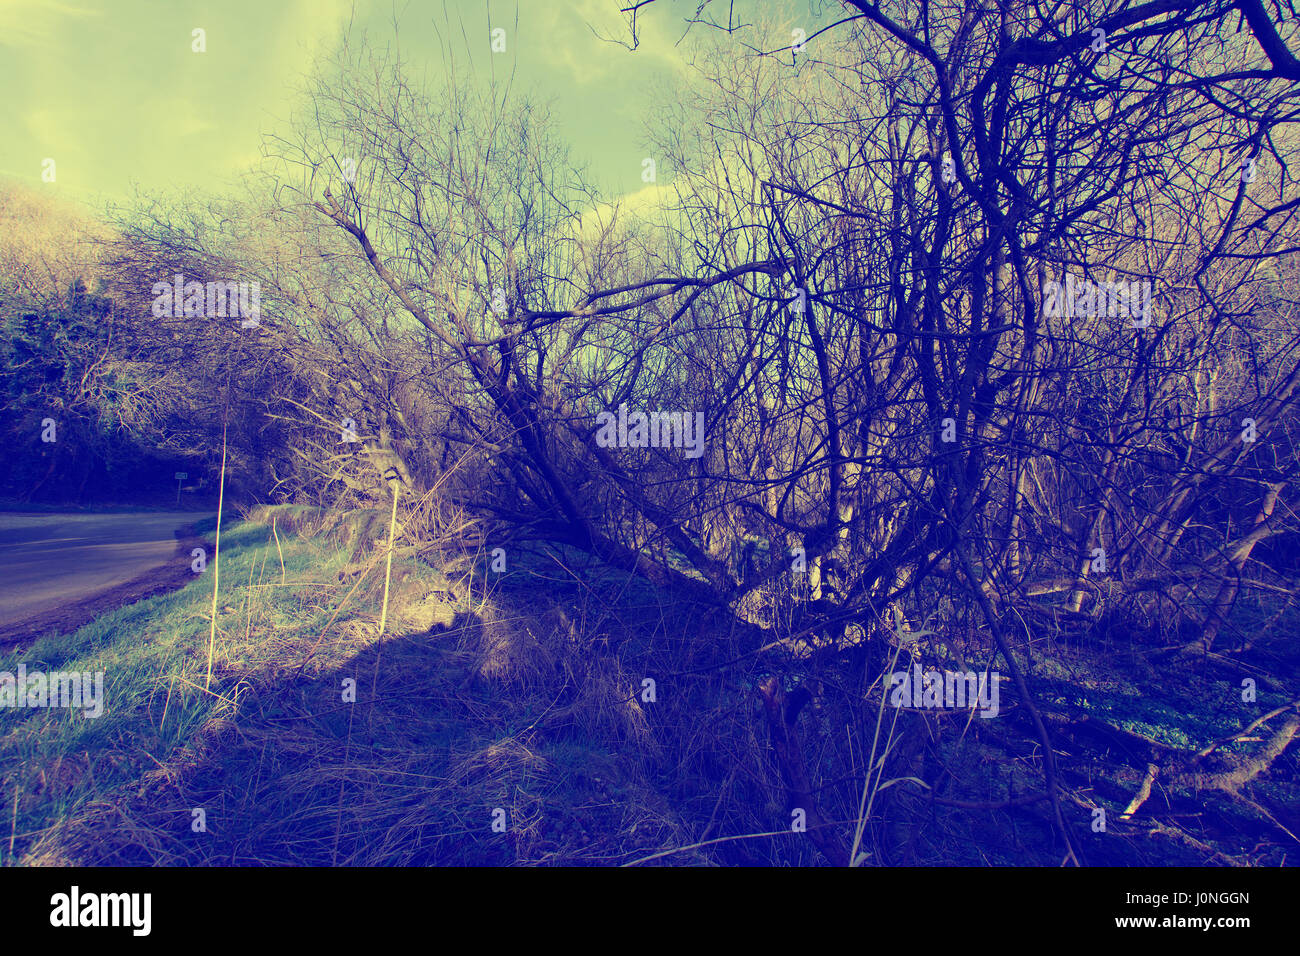 The bush , post apocalyptic vision of nature.Peak District landscape,Derbyshire,United Kingdom. - Stock Image